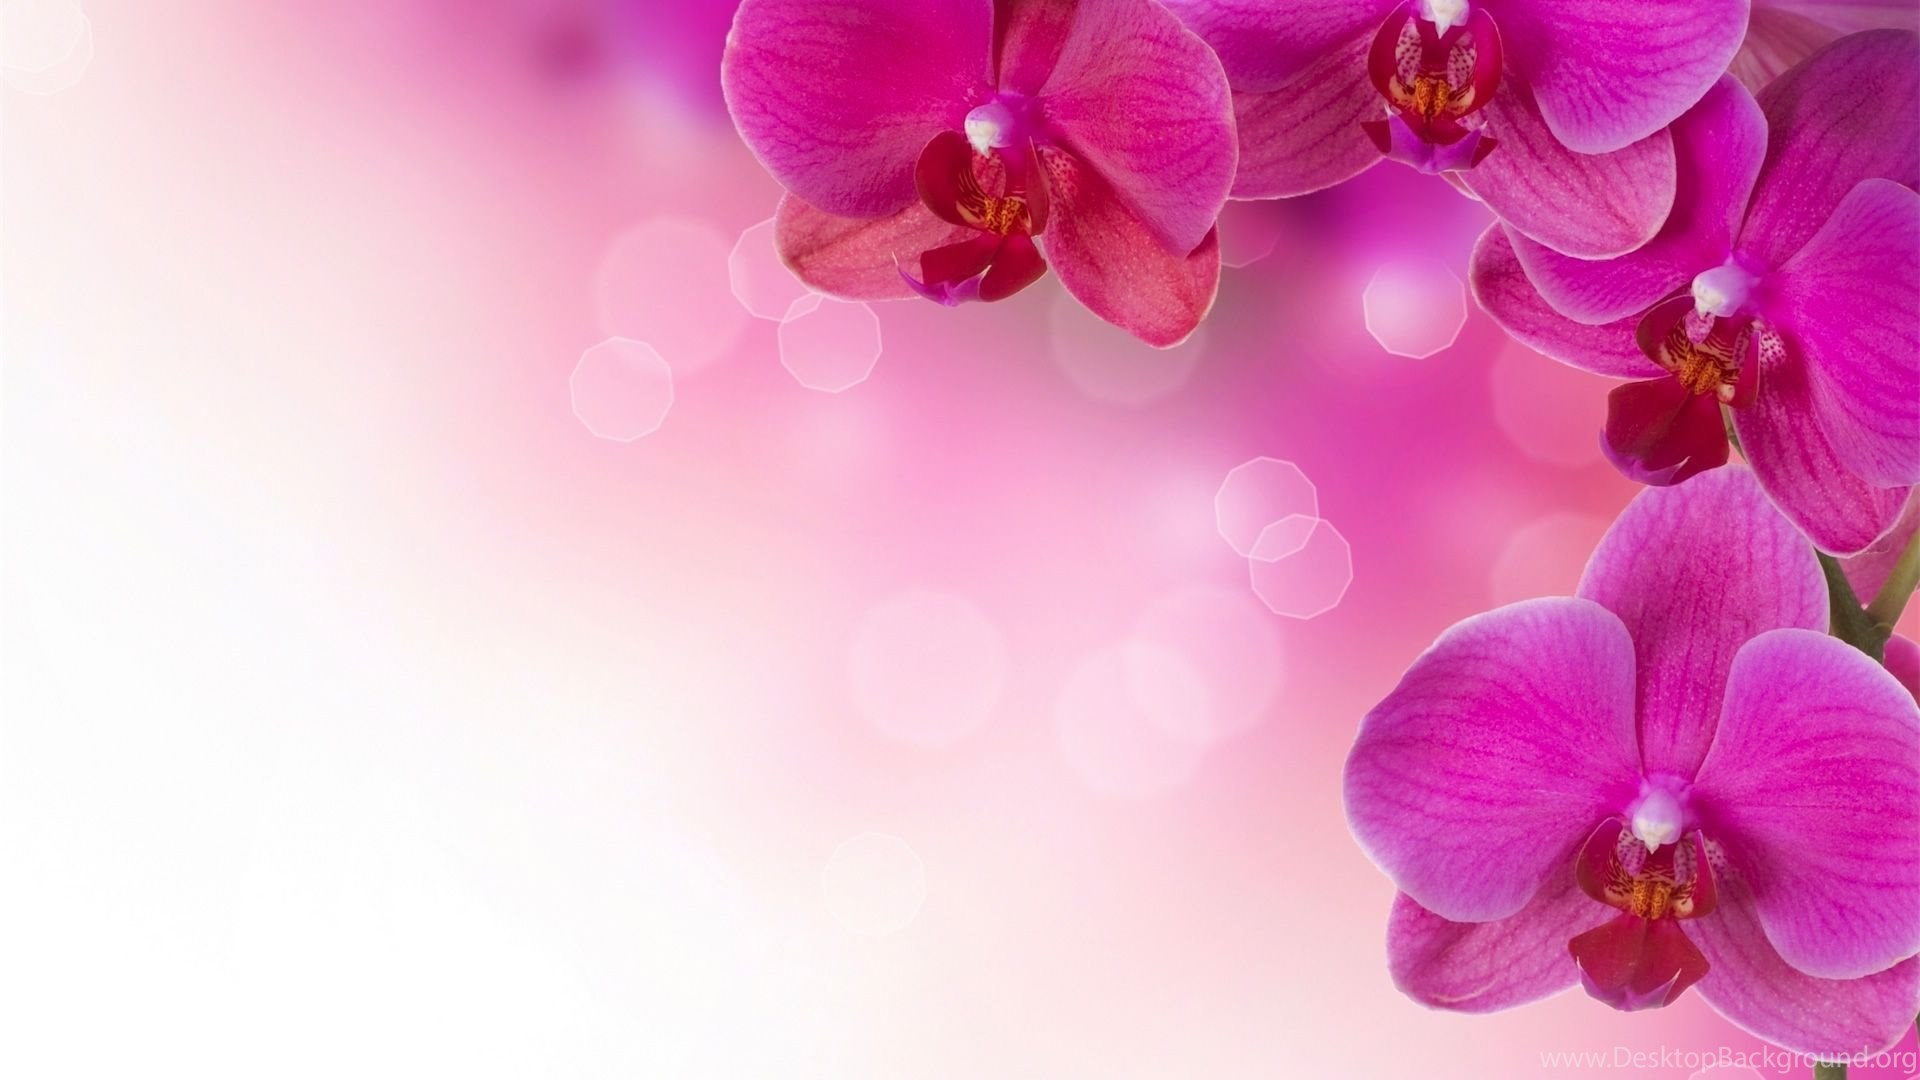 Floral Desktop Wallpapers Hd Wallpaper Backgrounds Of Your Choice